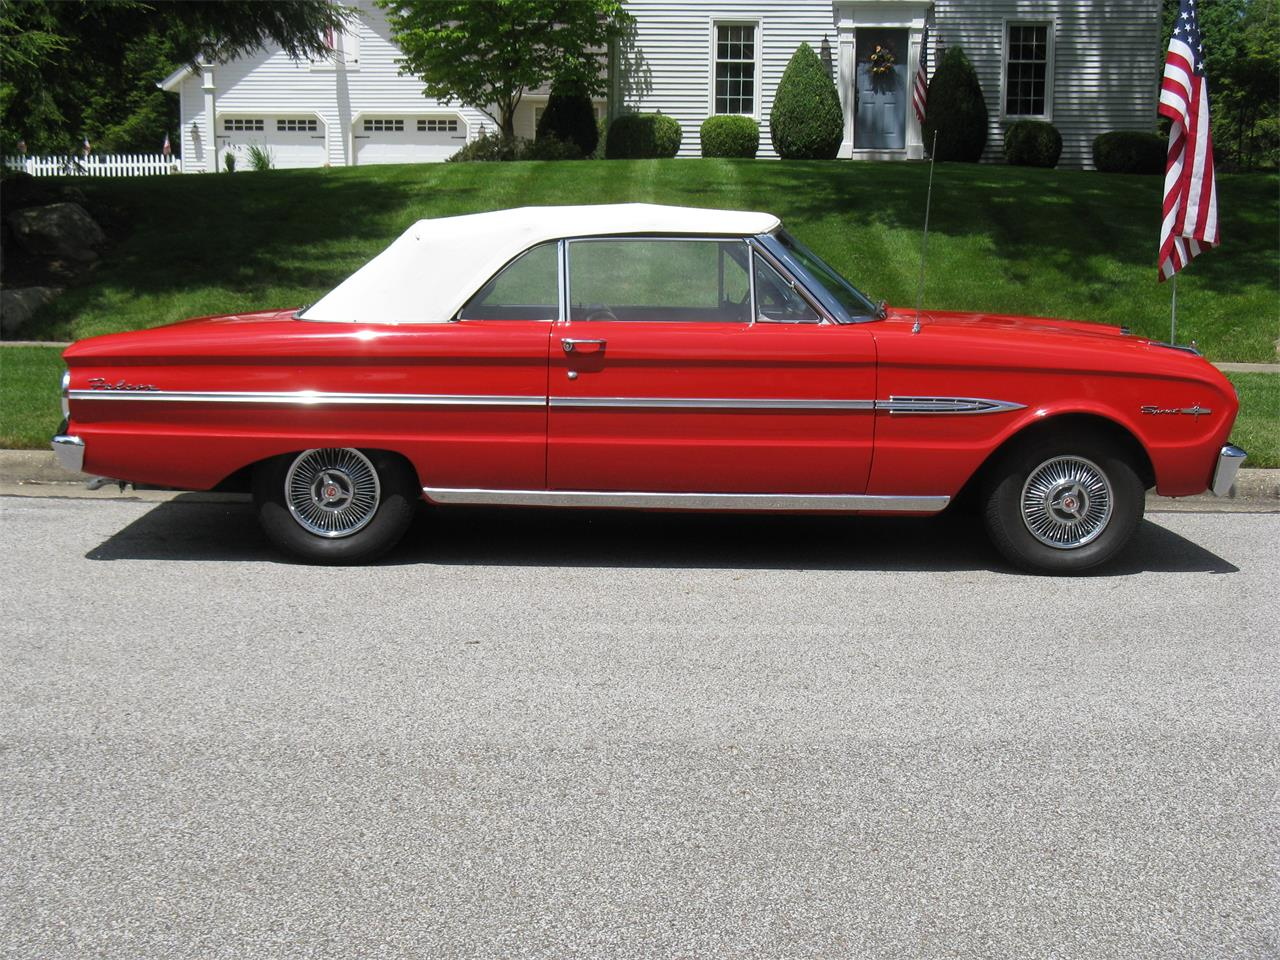 1963 Ford Falcon (CC-1359068) for sale in Shaker Heights, Ohio